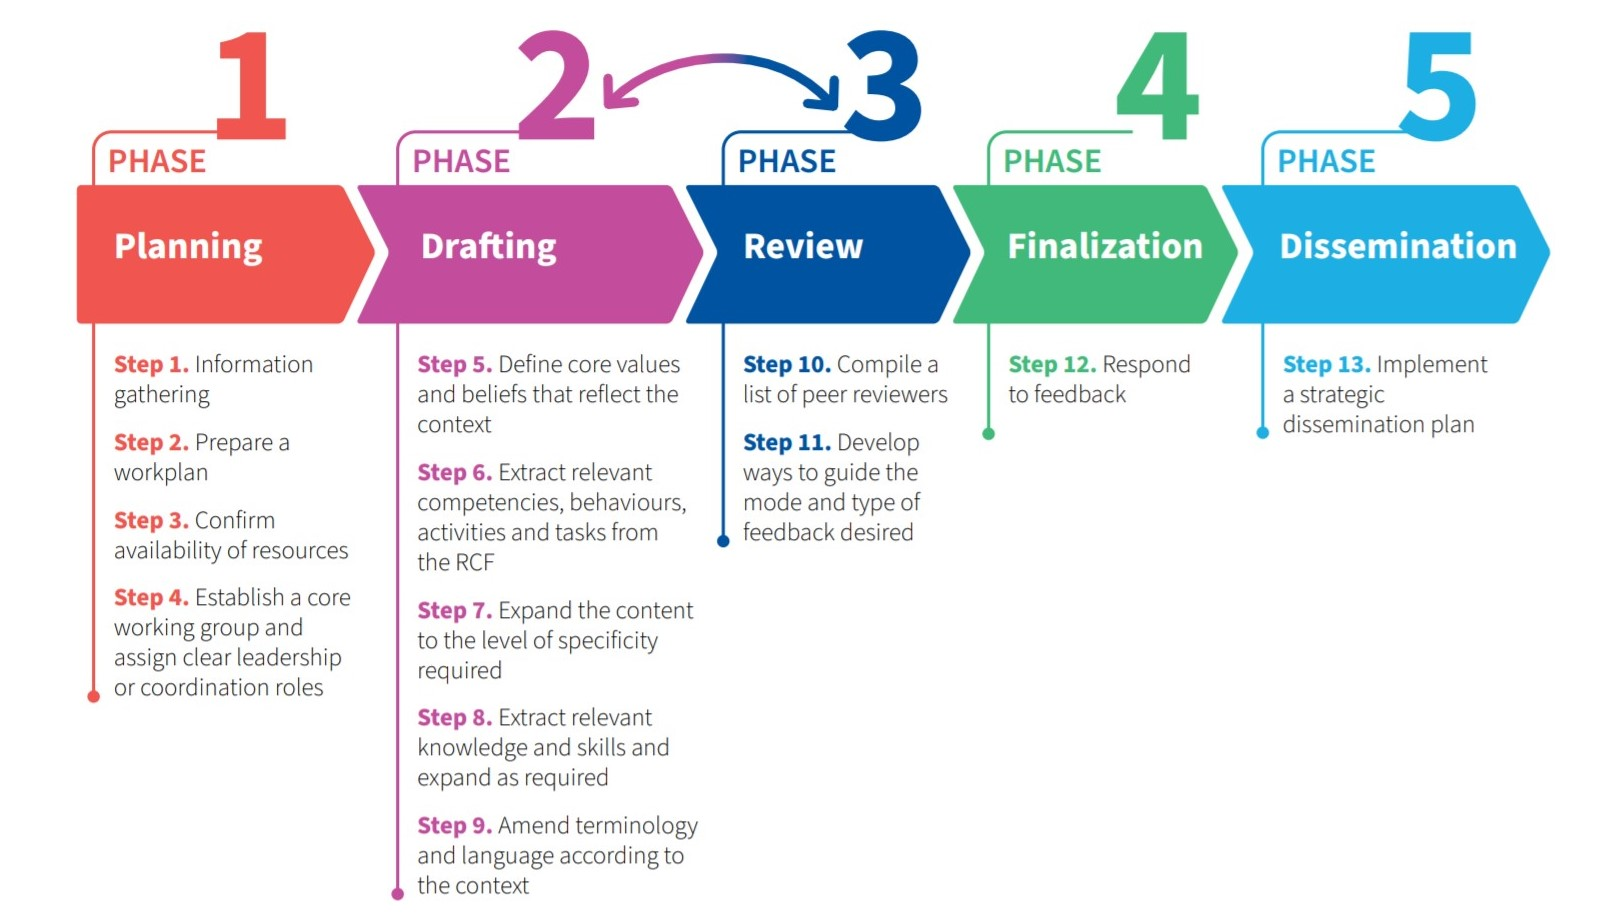 5 step phase to adapting the RCF for specific context. Planning, drafting, reviw, finalization and dissenination. Drafting and review are fluid steps. In total there are 13 steps to the phased approach.